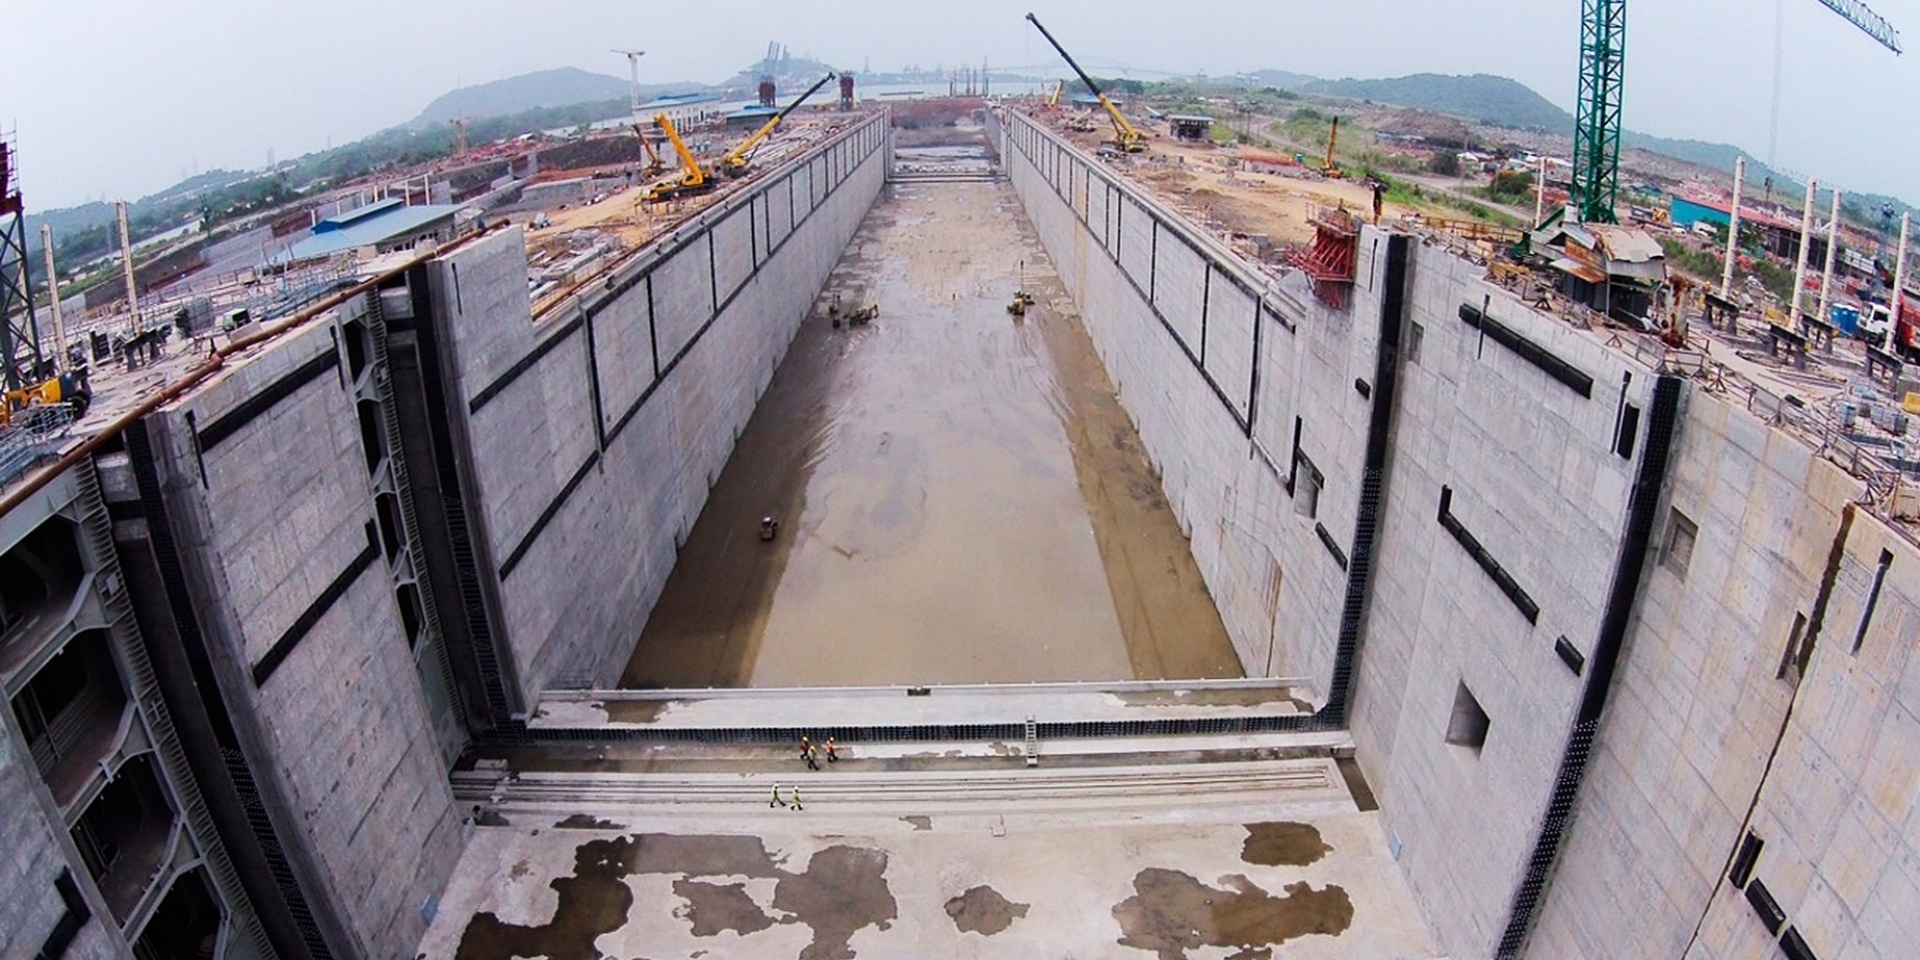 EXTENSION OF PANAMA CANAL